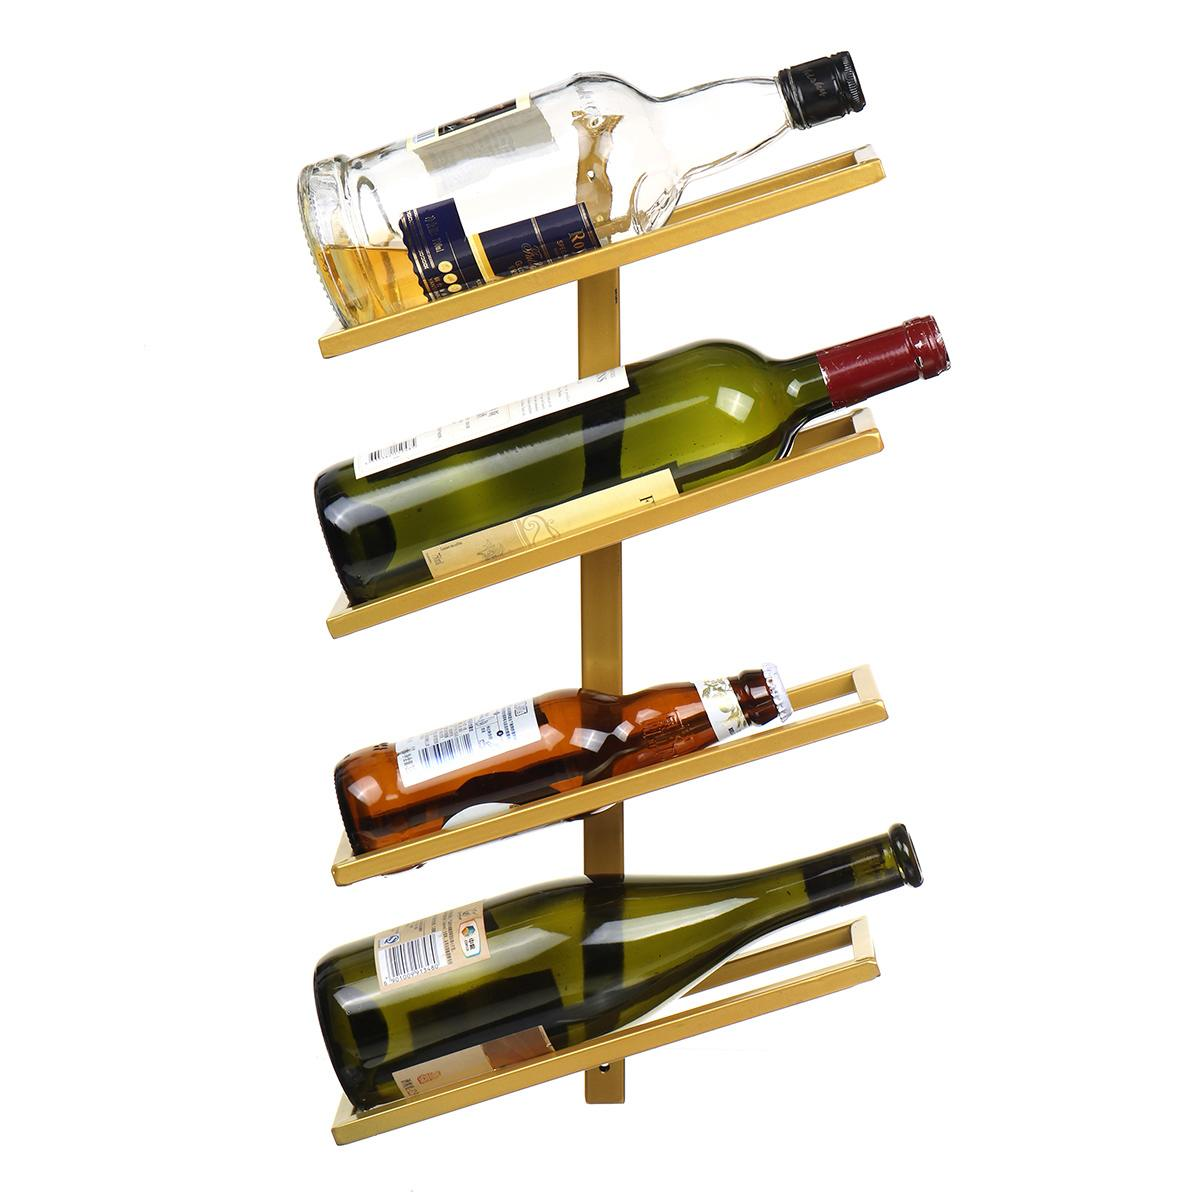 Modern Iron Wine Rack Wall Mounted Wine Holder Home Bar Decor Wine Glass Hanging Holder Storage Organizer Rack Home Decoration